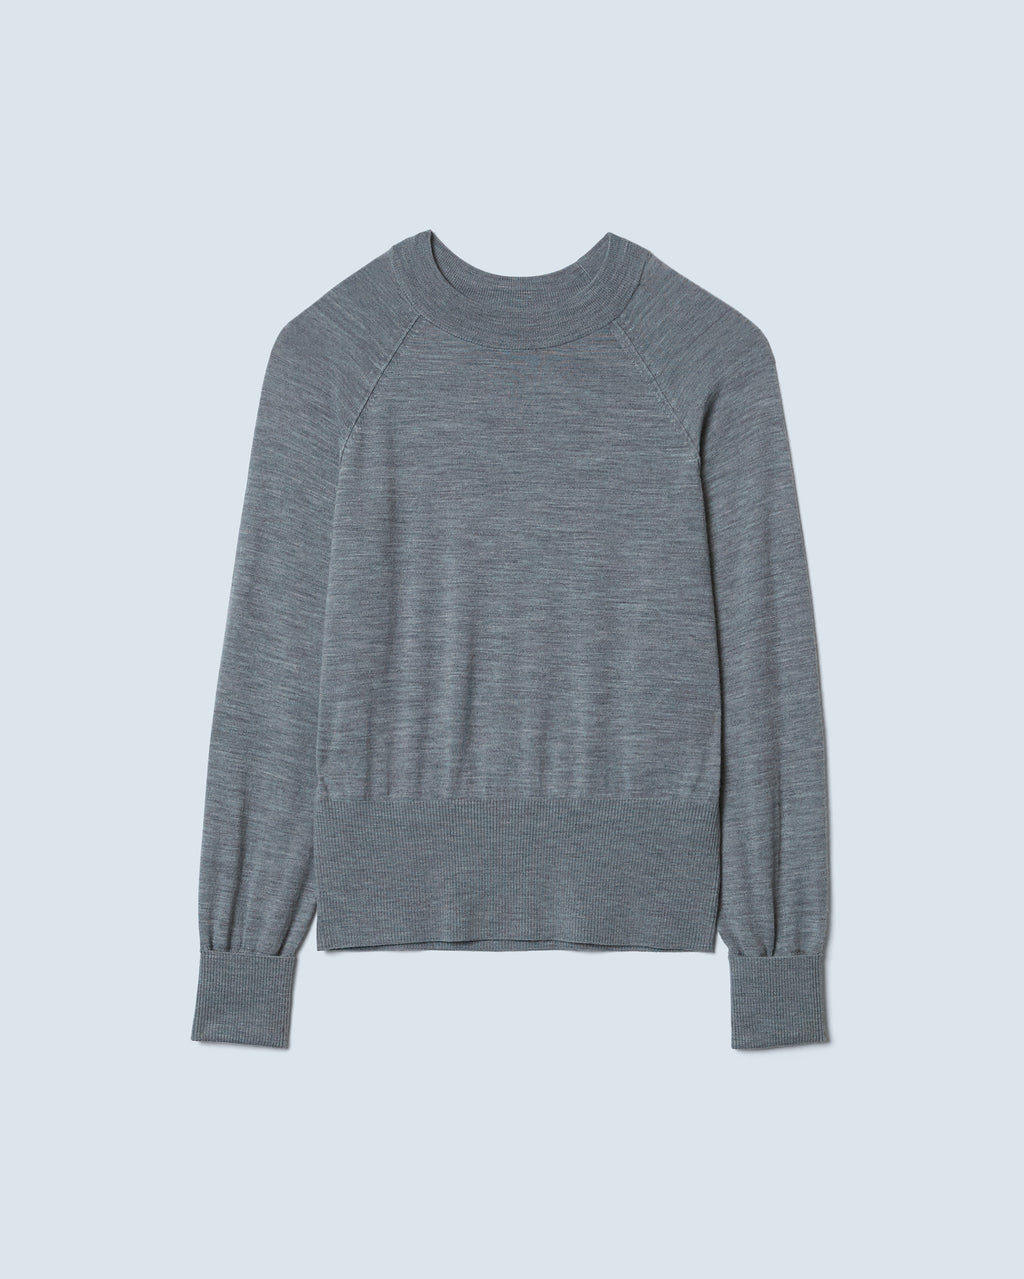 The Grove Sweater in Heather Grey